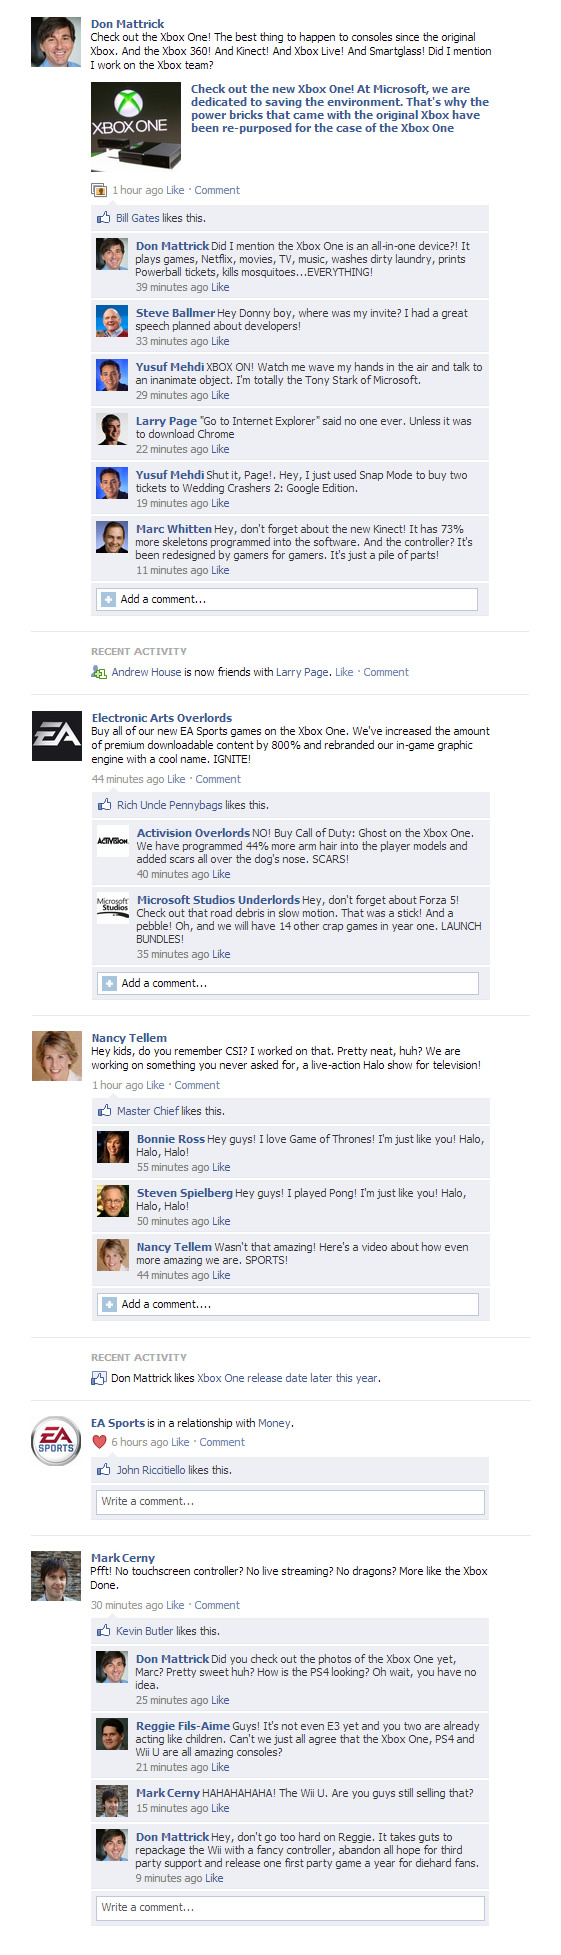 Xbox One Press Conference Fake Facebook Conversations